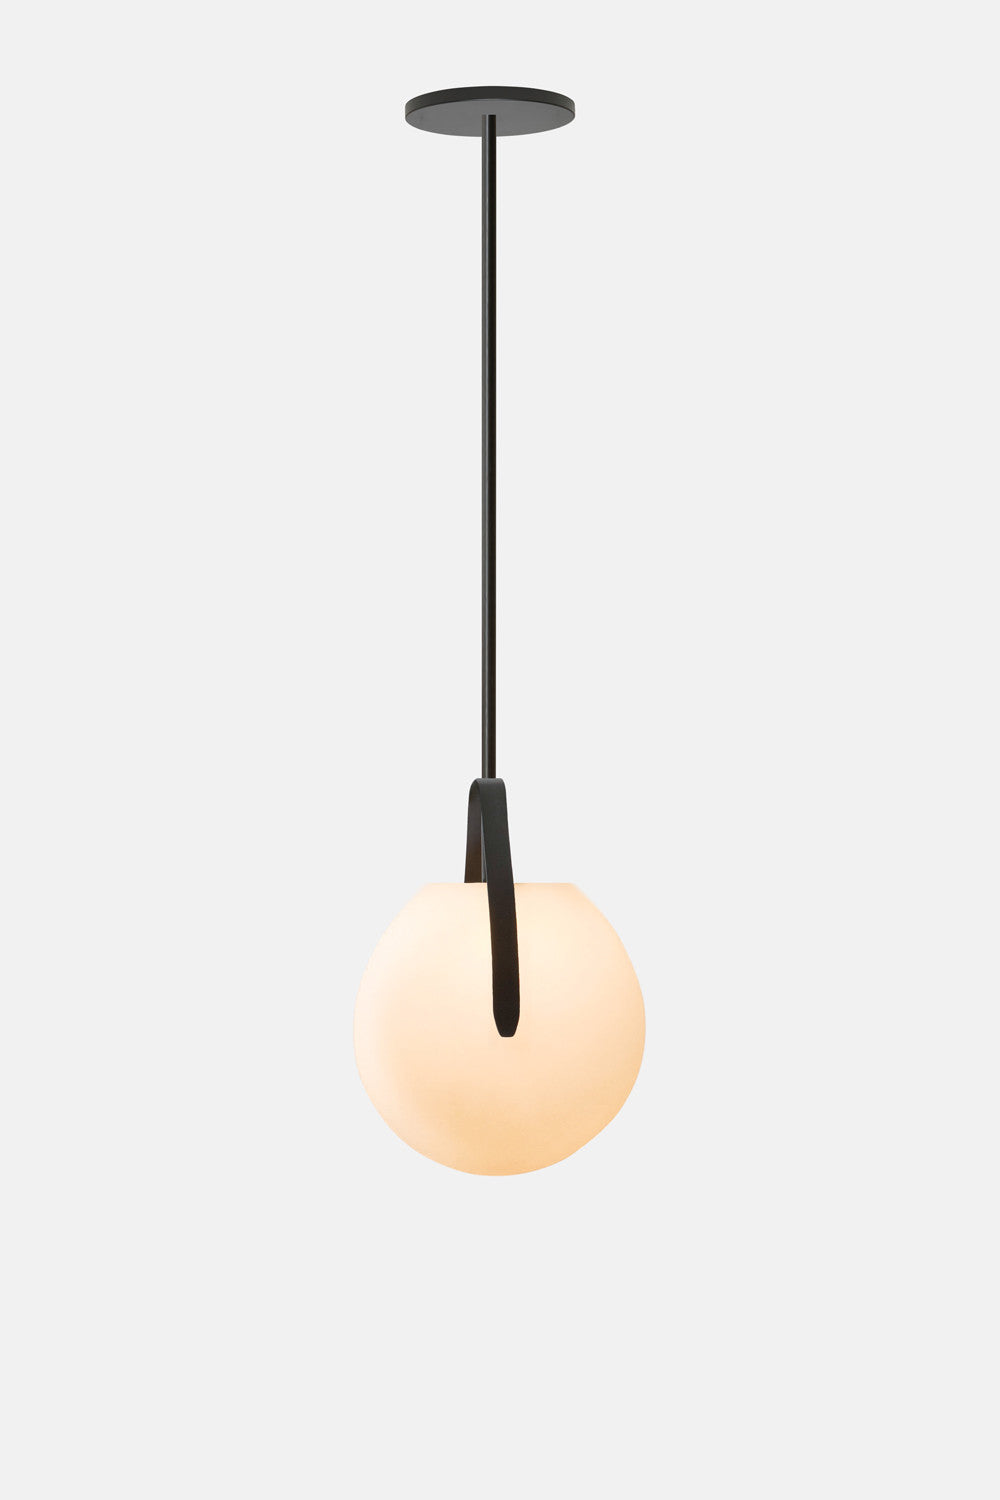 Decorative Led Hanging Lamps And Lights Modern Pendant Lighting Light Fixture Wiring 2 White Black Gala Small